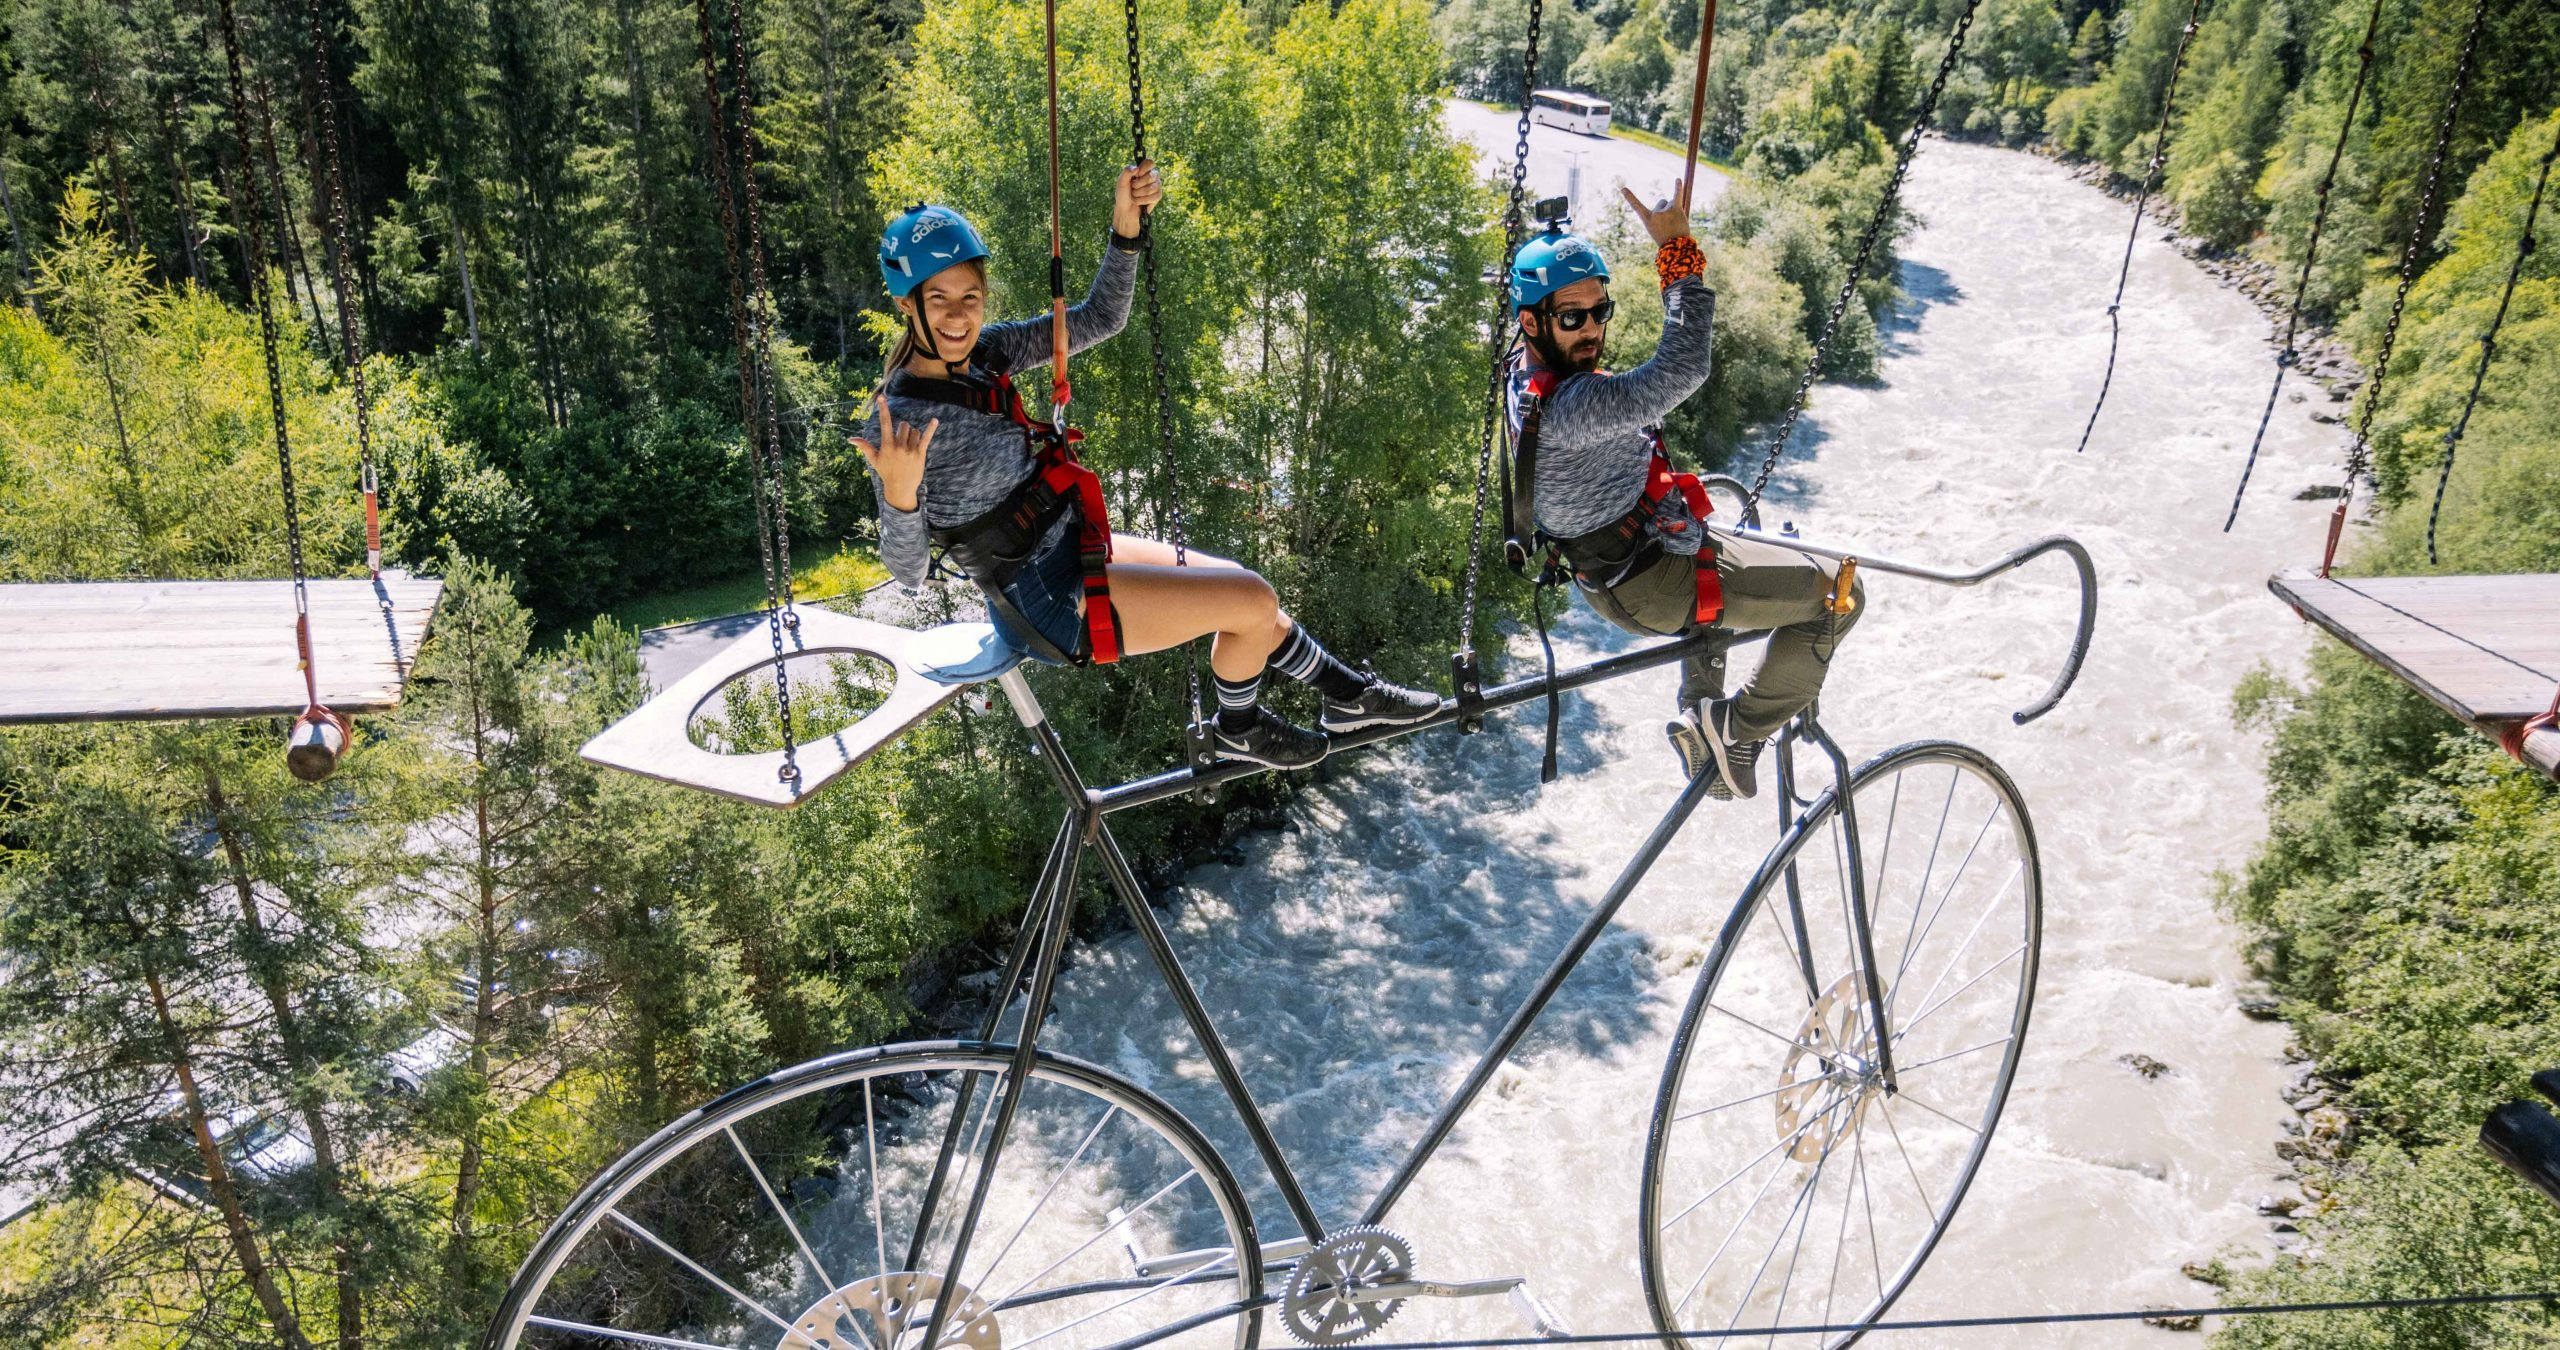 Biggest high ropes course in Austria